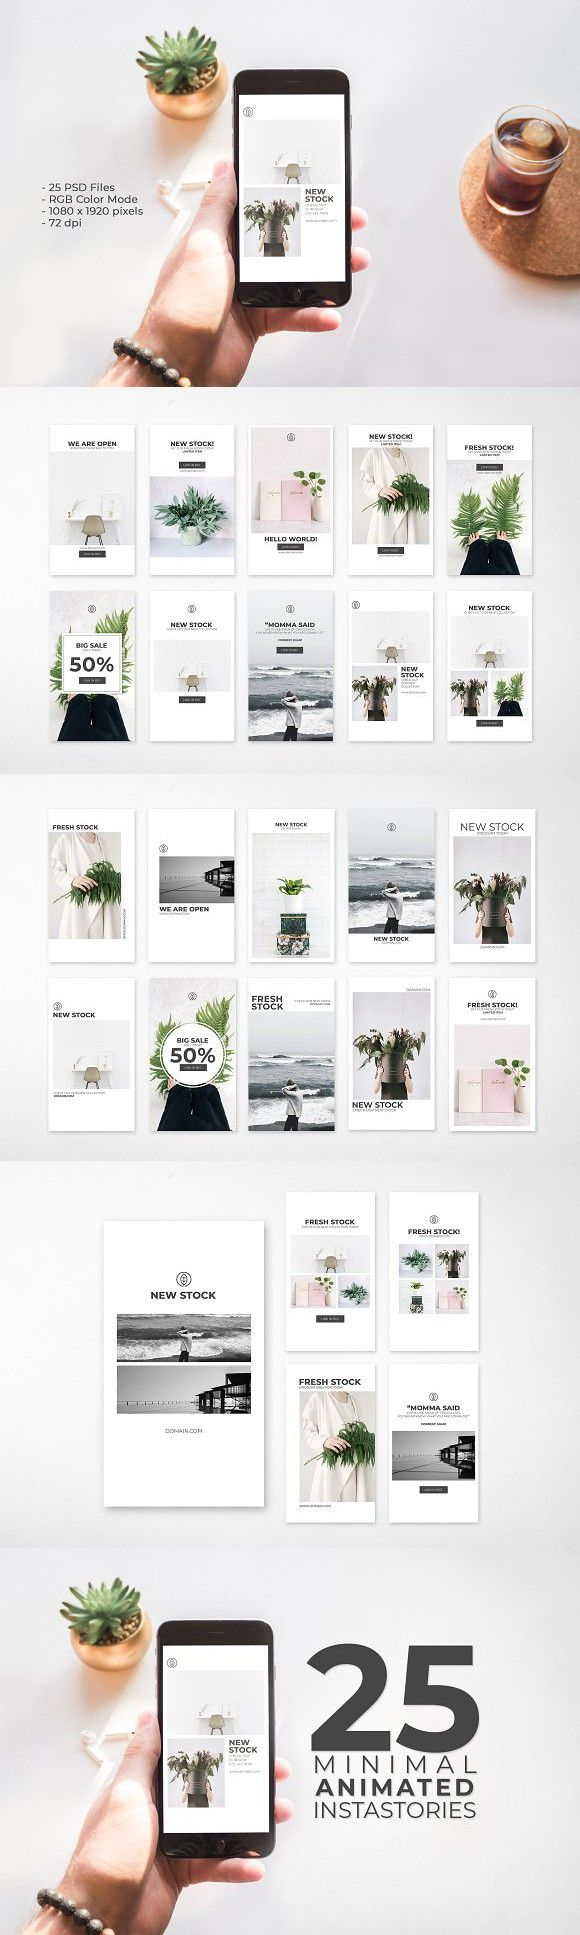 Animated instagram stories template Instagram story